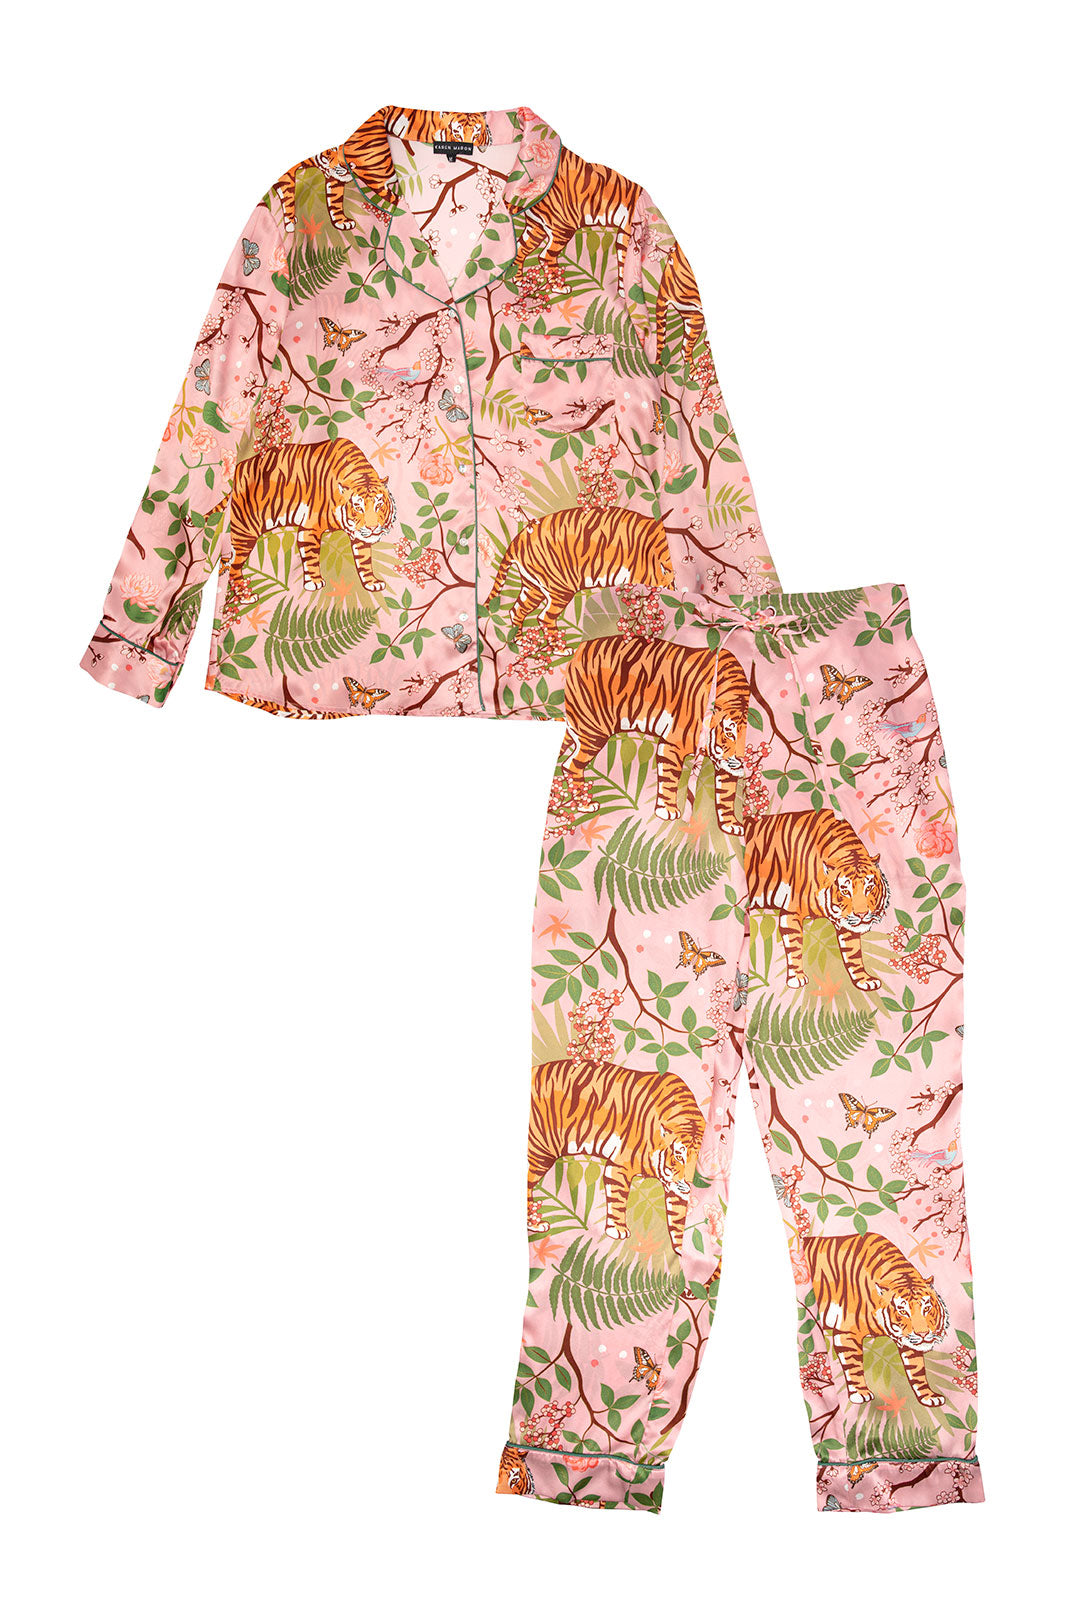 Tiger Blossom silk pyjamas, pink pyjamas with illustrations of tigers and green leaves